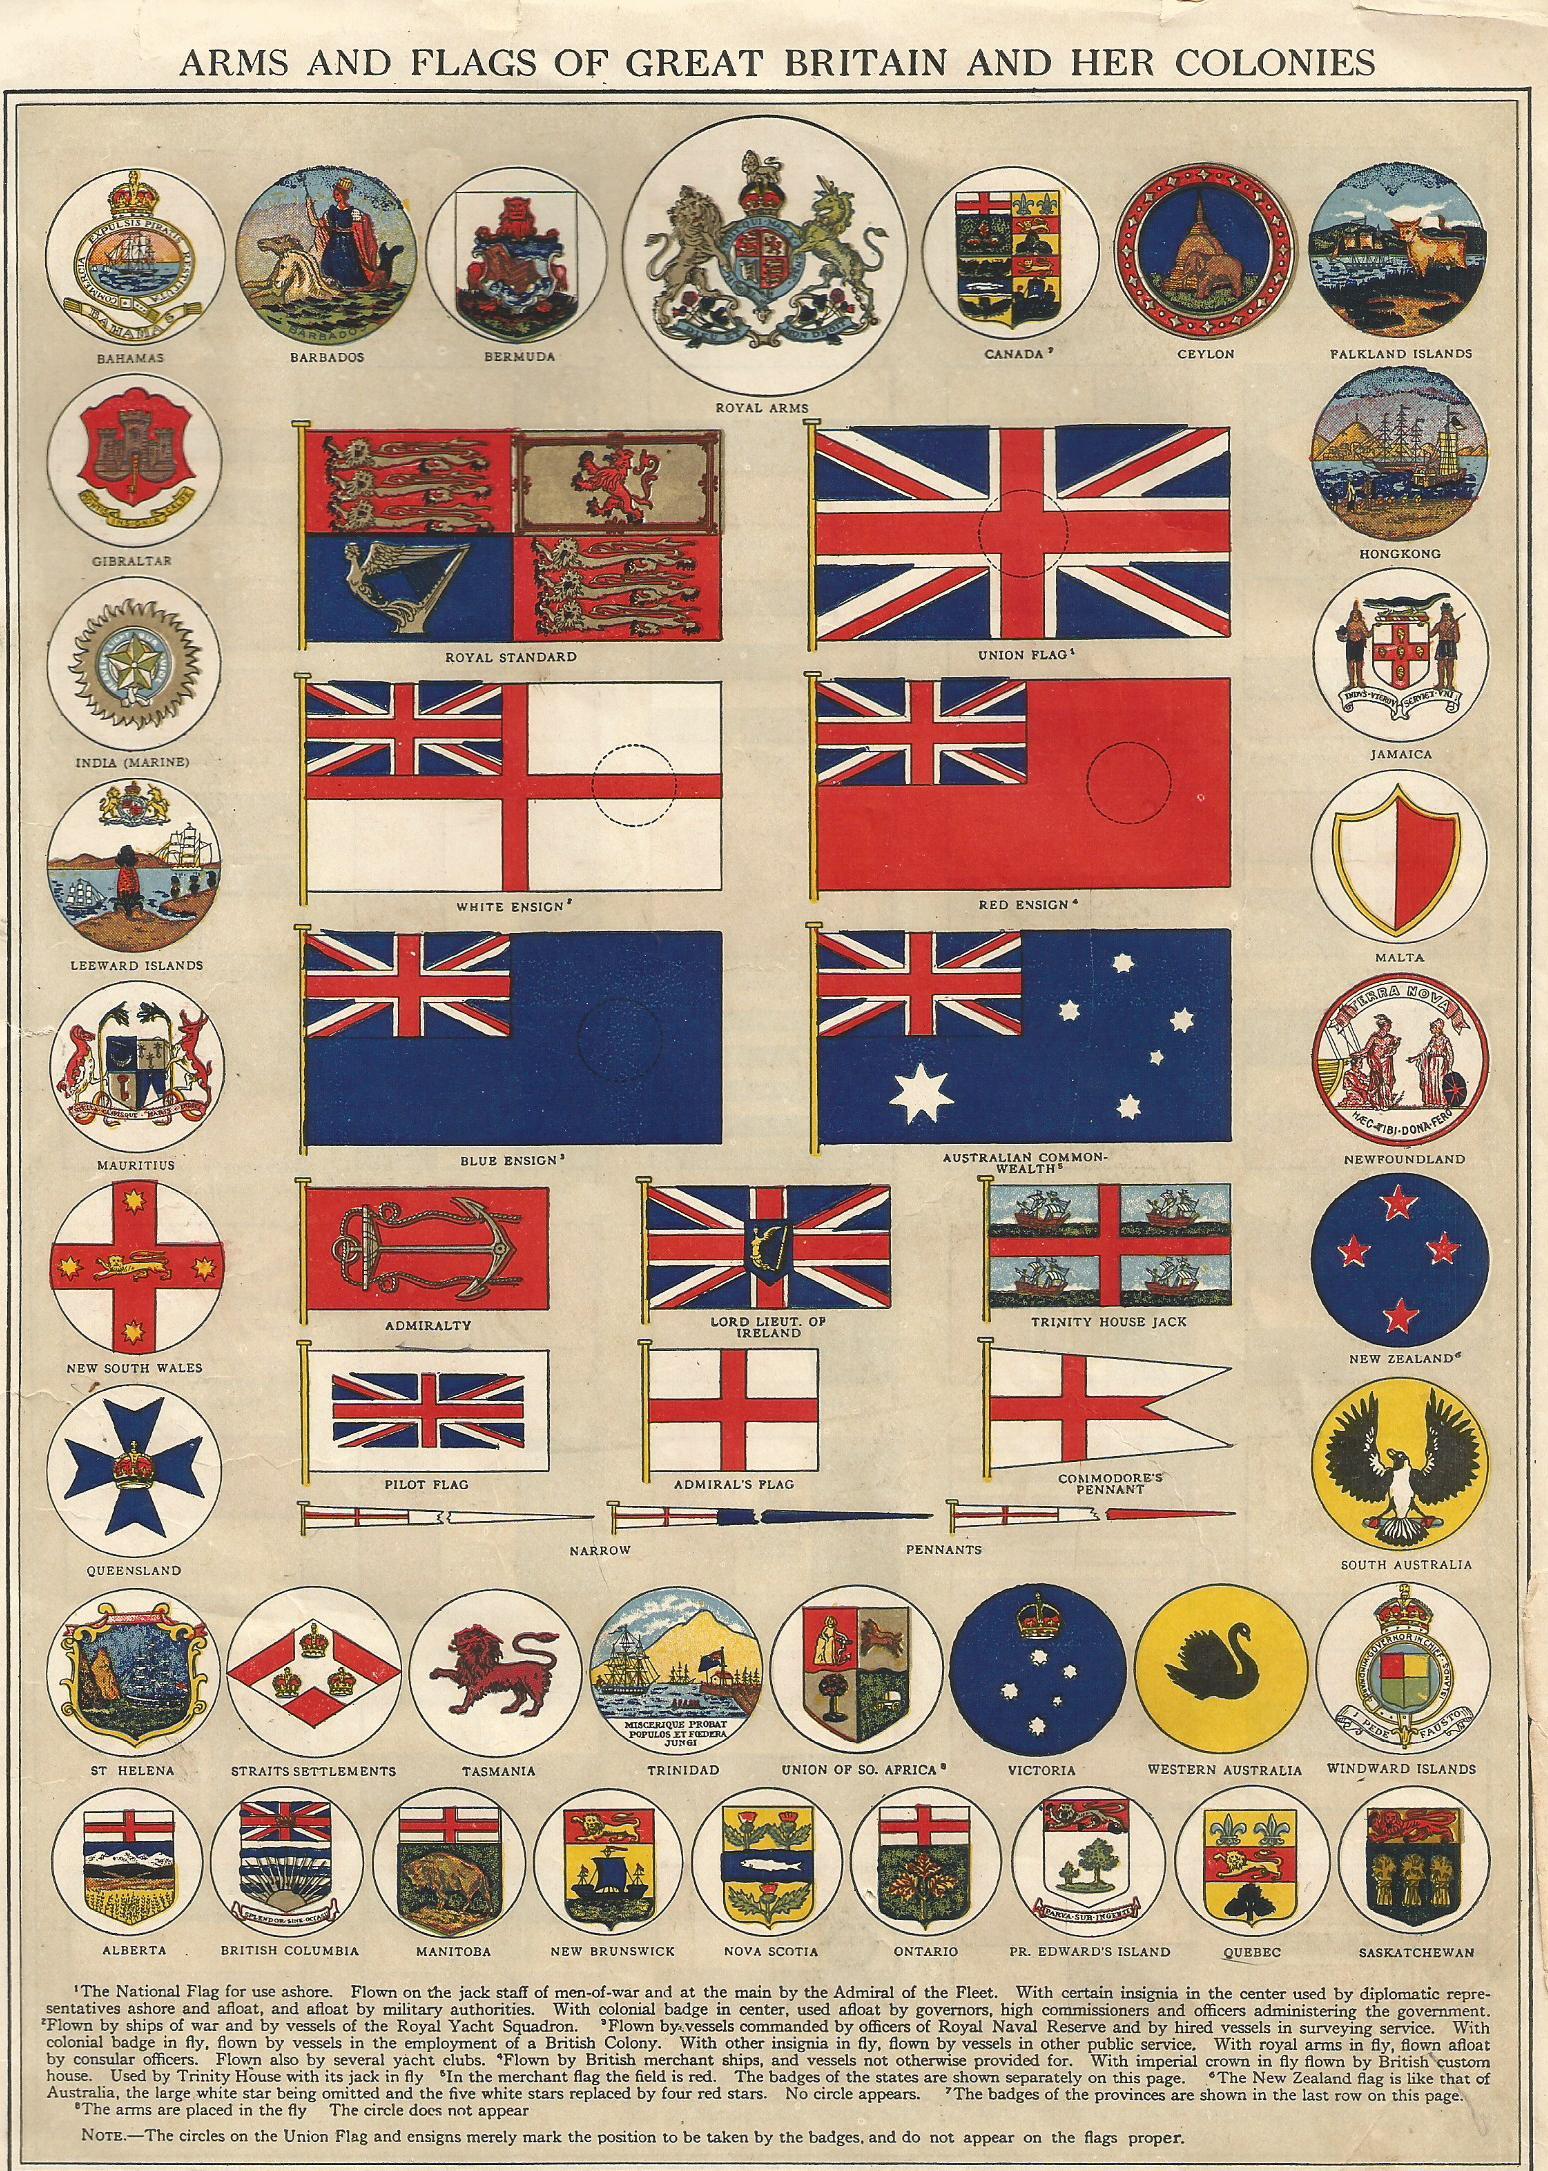 1914 arms and flags of great britain and her colonies including